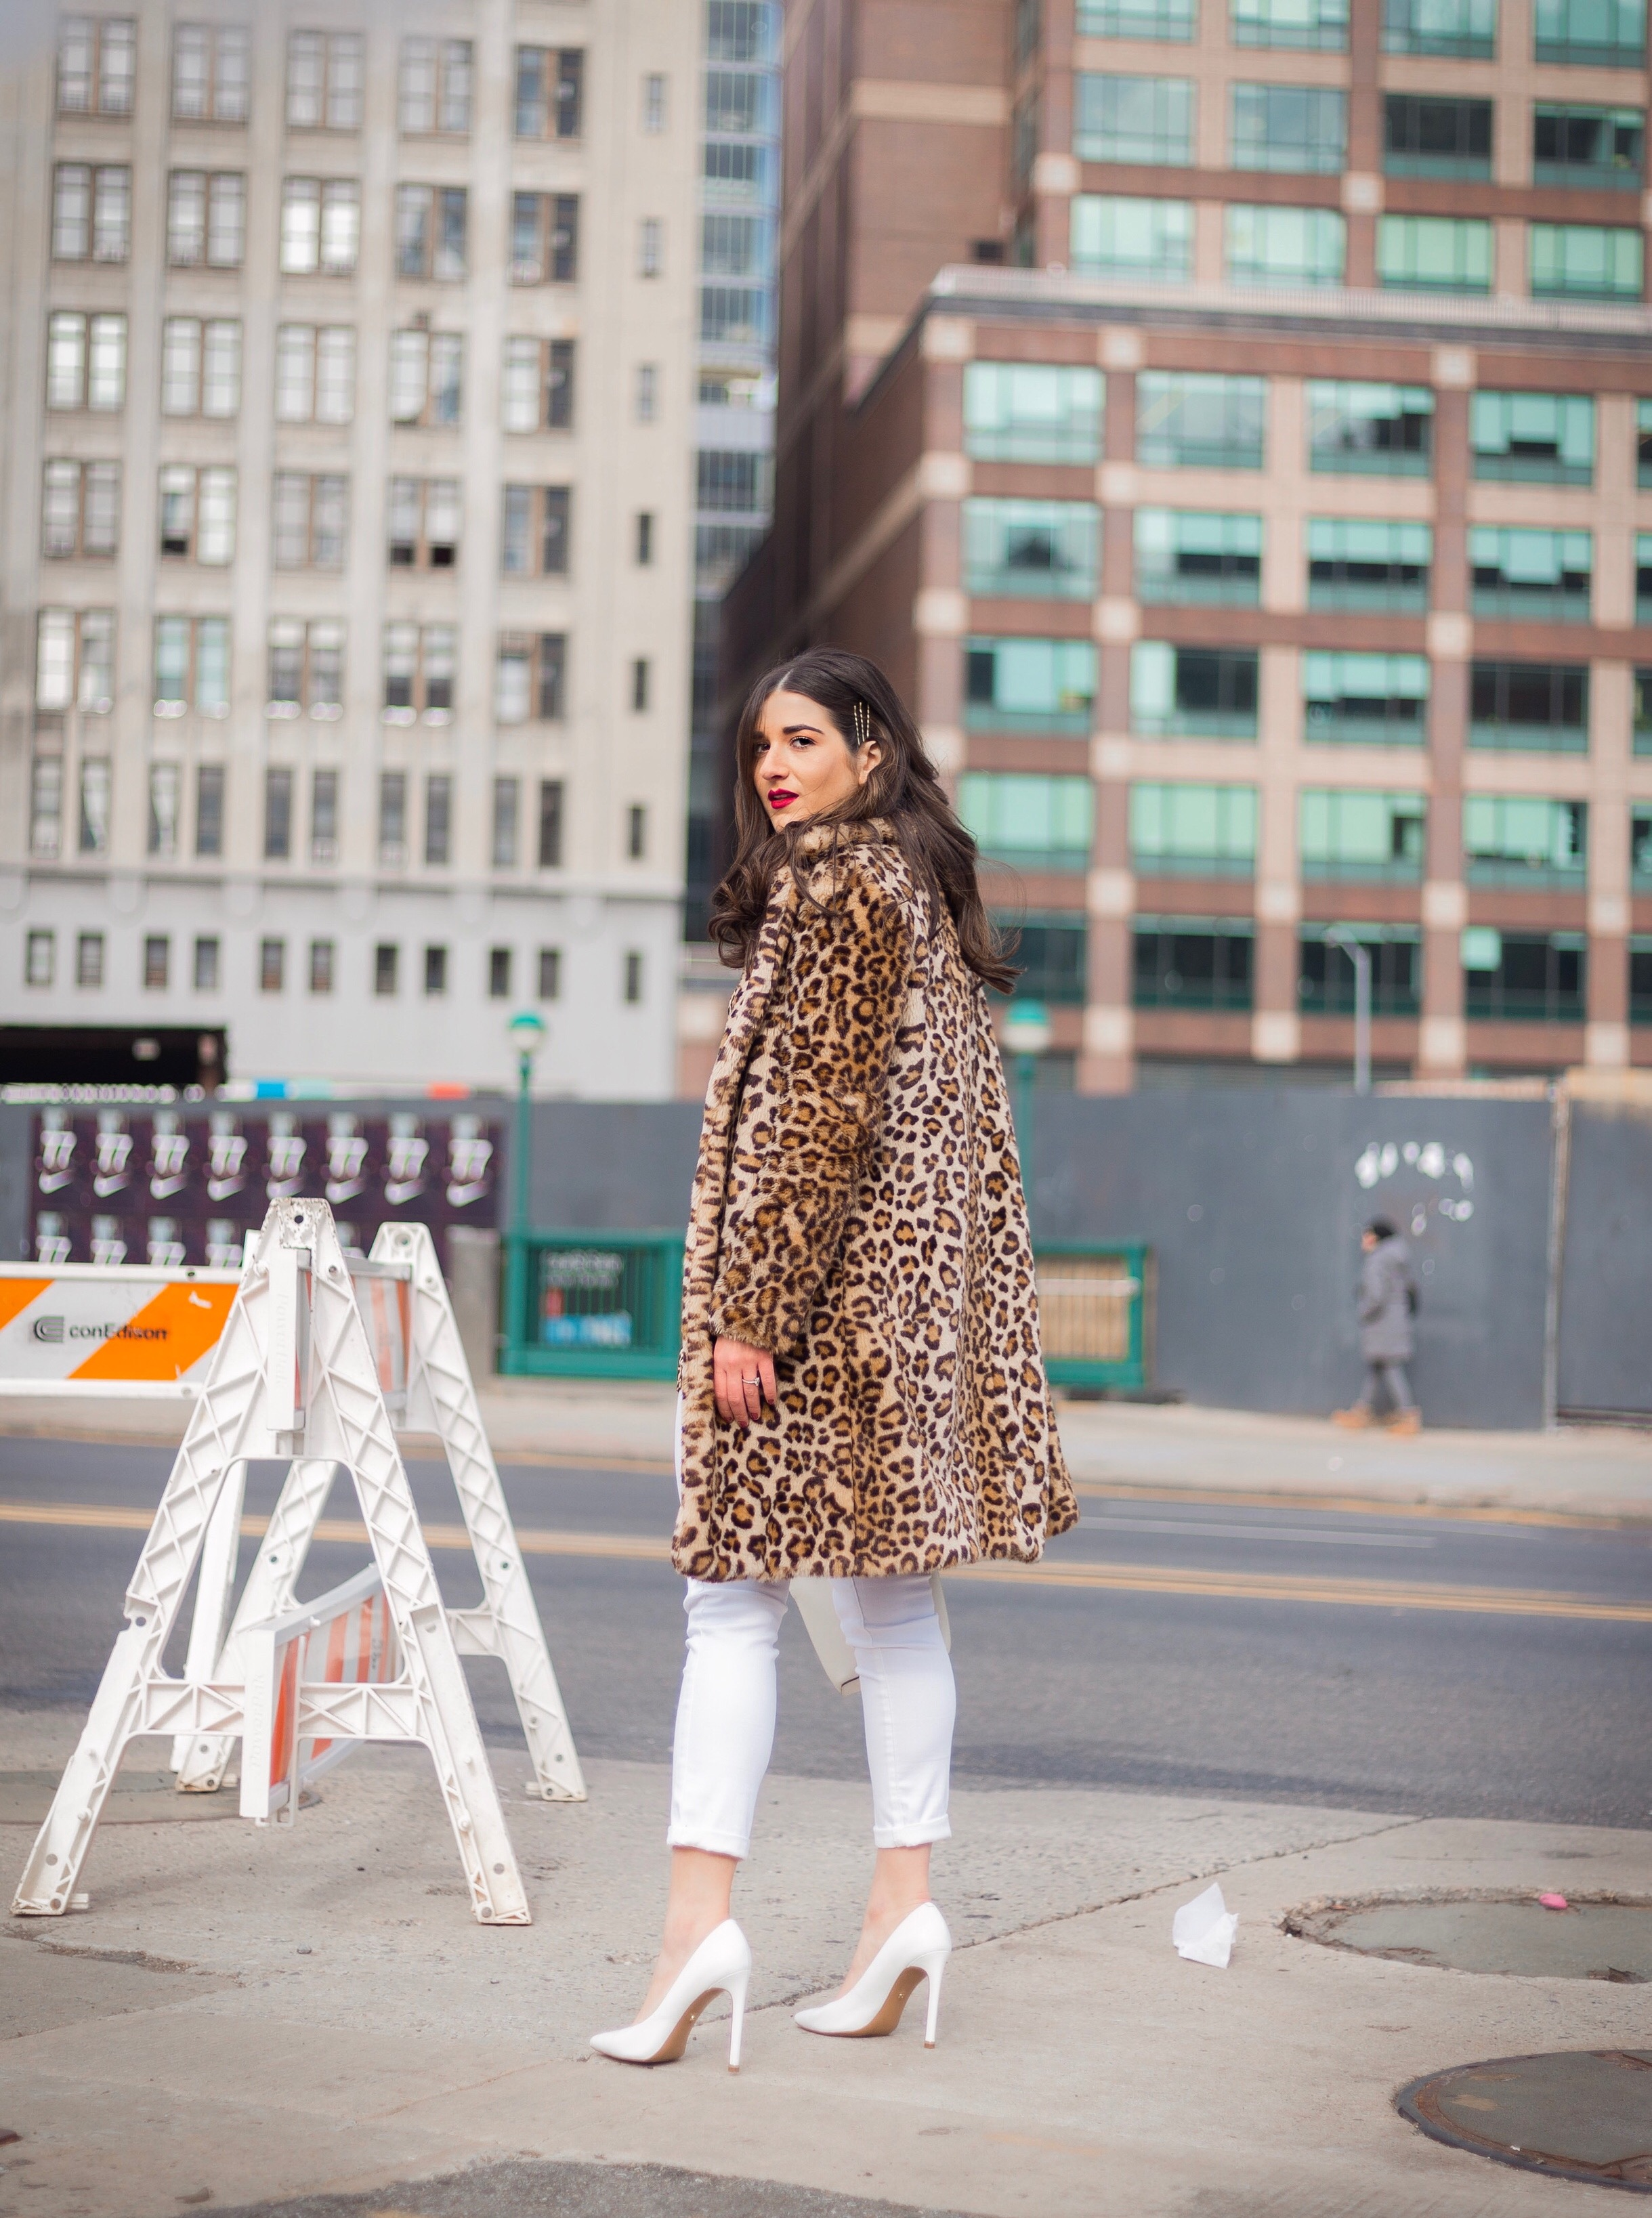 Dressing Up My Democracy Denim Esther Santer Fashion Blog NYC Street Style Blogger Outfit OOTD Trendy Shopping White Jeans Leopard Top Coat Inspo Bobby Pins Hair Trend White Heels Chaya Ross Photography Gold Belt Cream Chain Small Bag Wear Inspiration.jpg